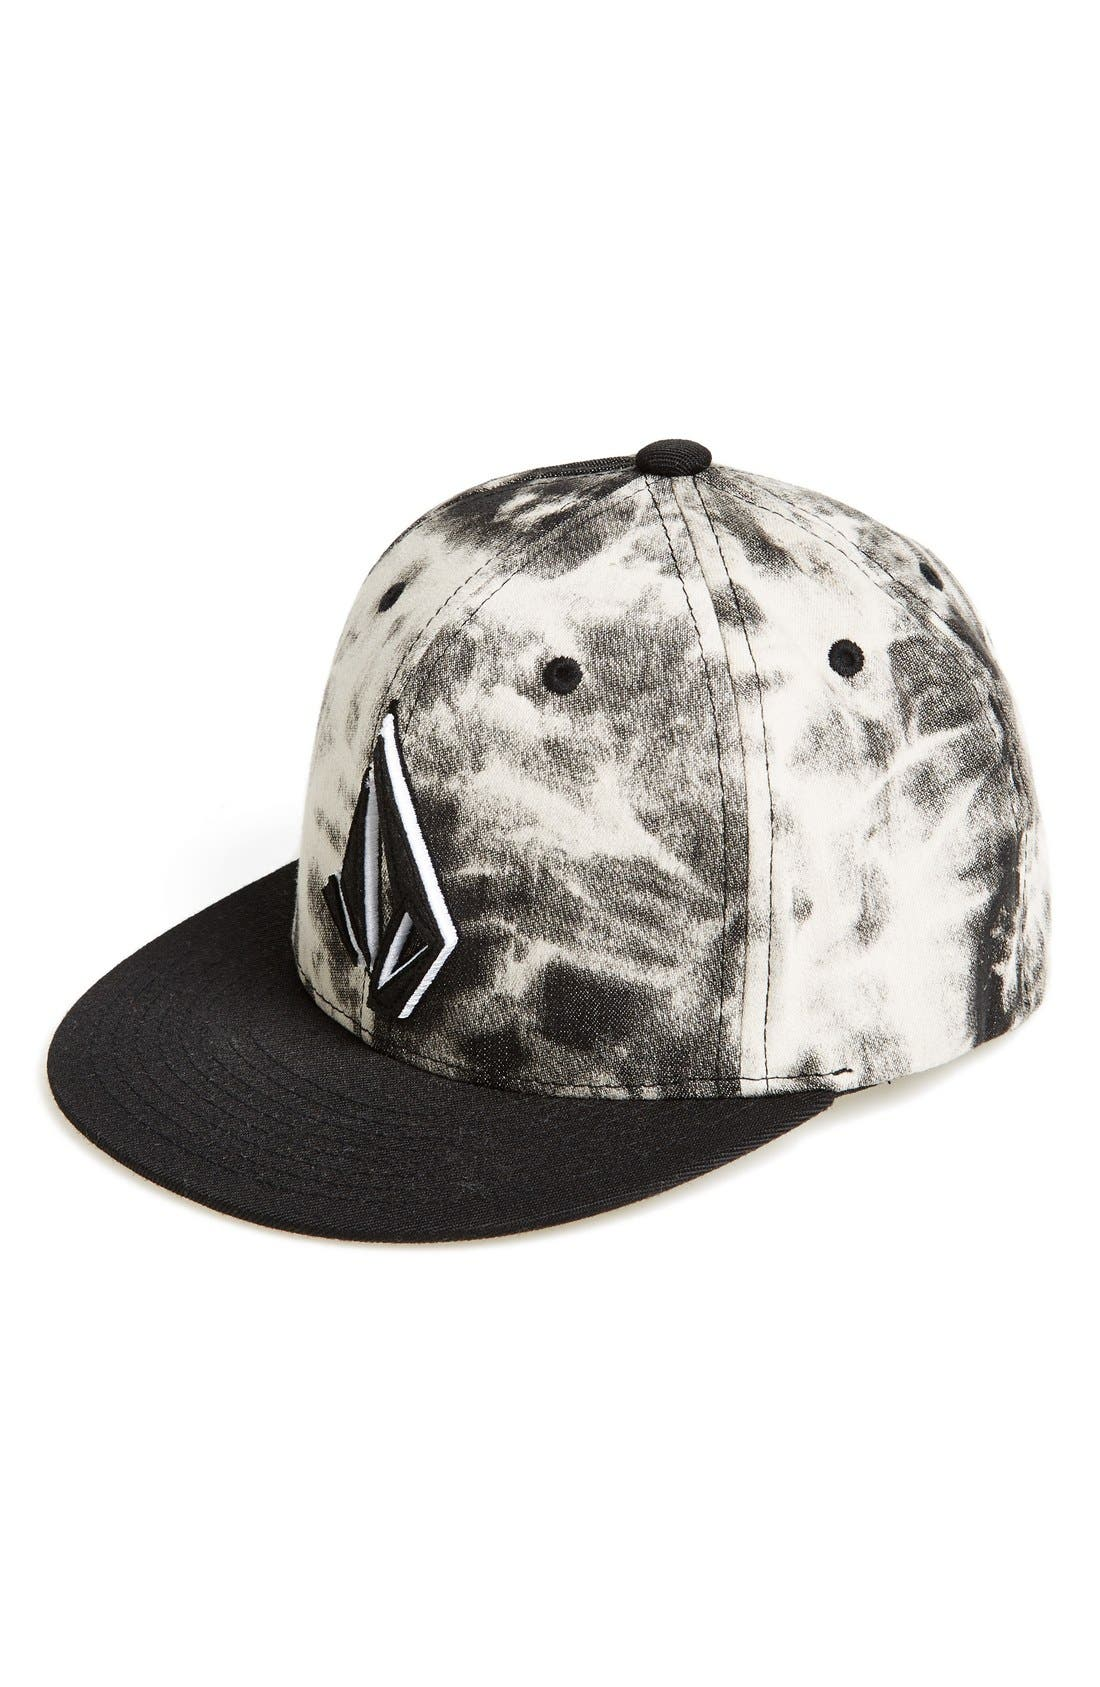 Alternate Image 1 Selected - Volcom Layer Six Panel Cap (Big Boys)